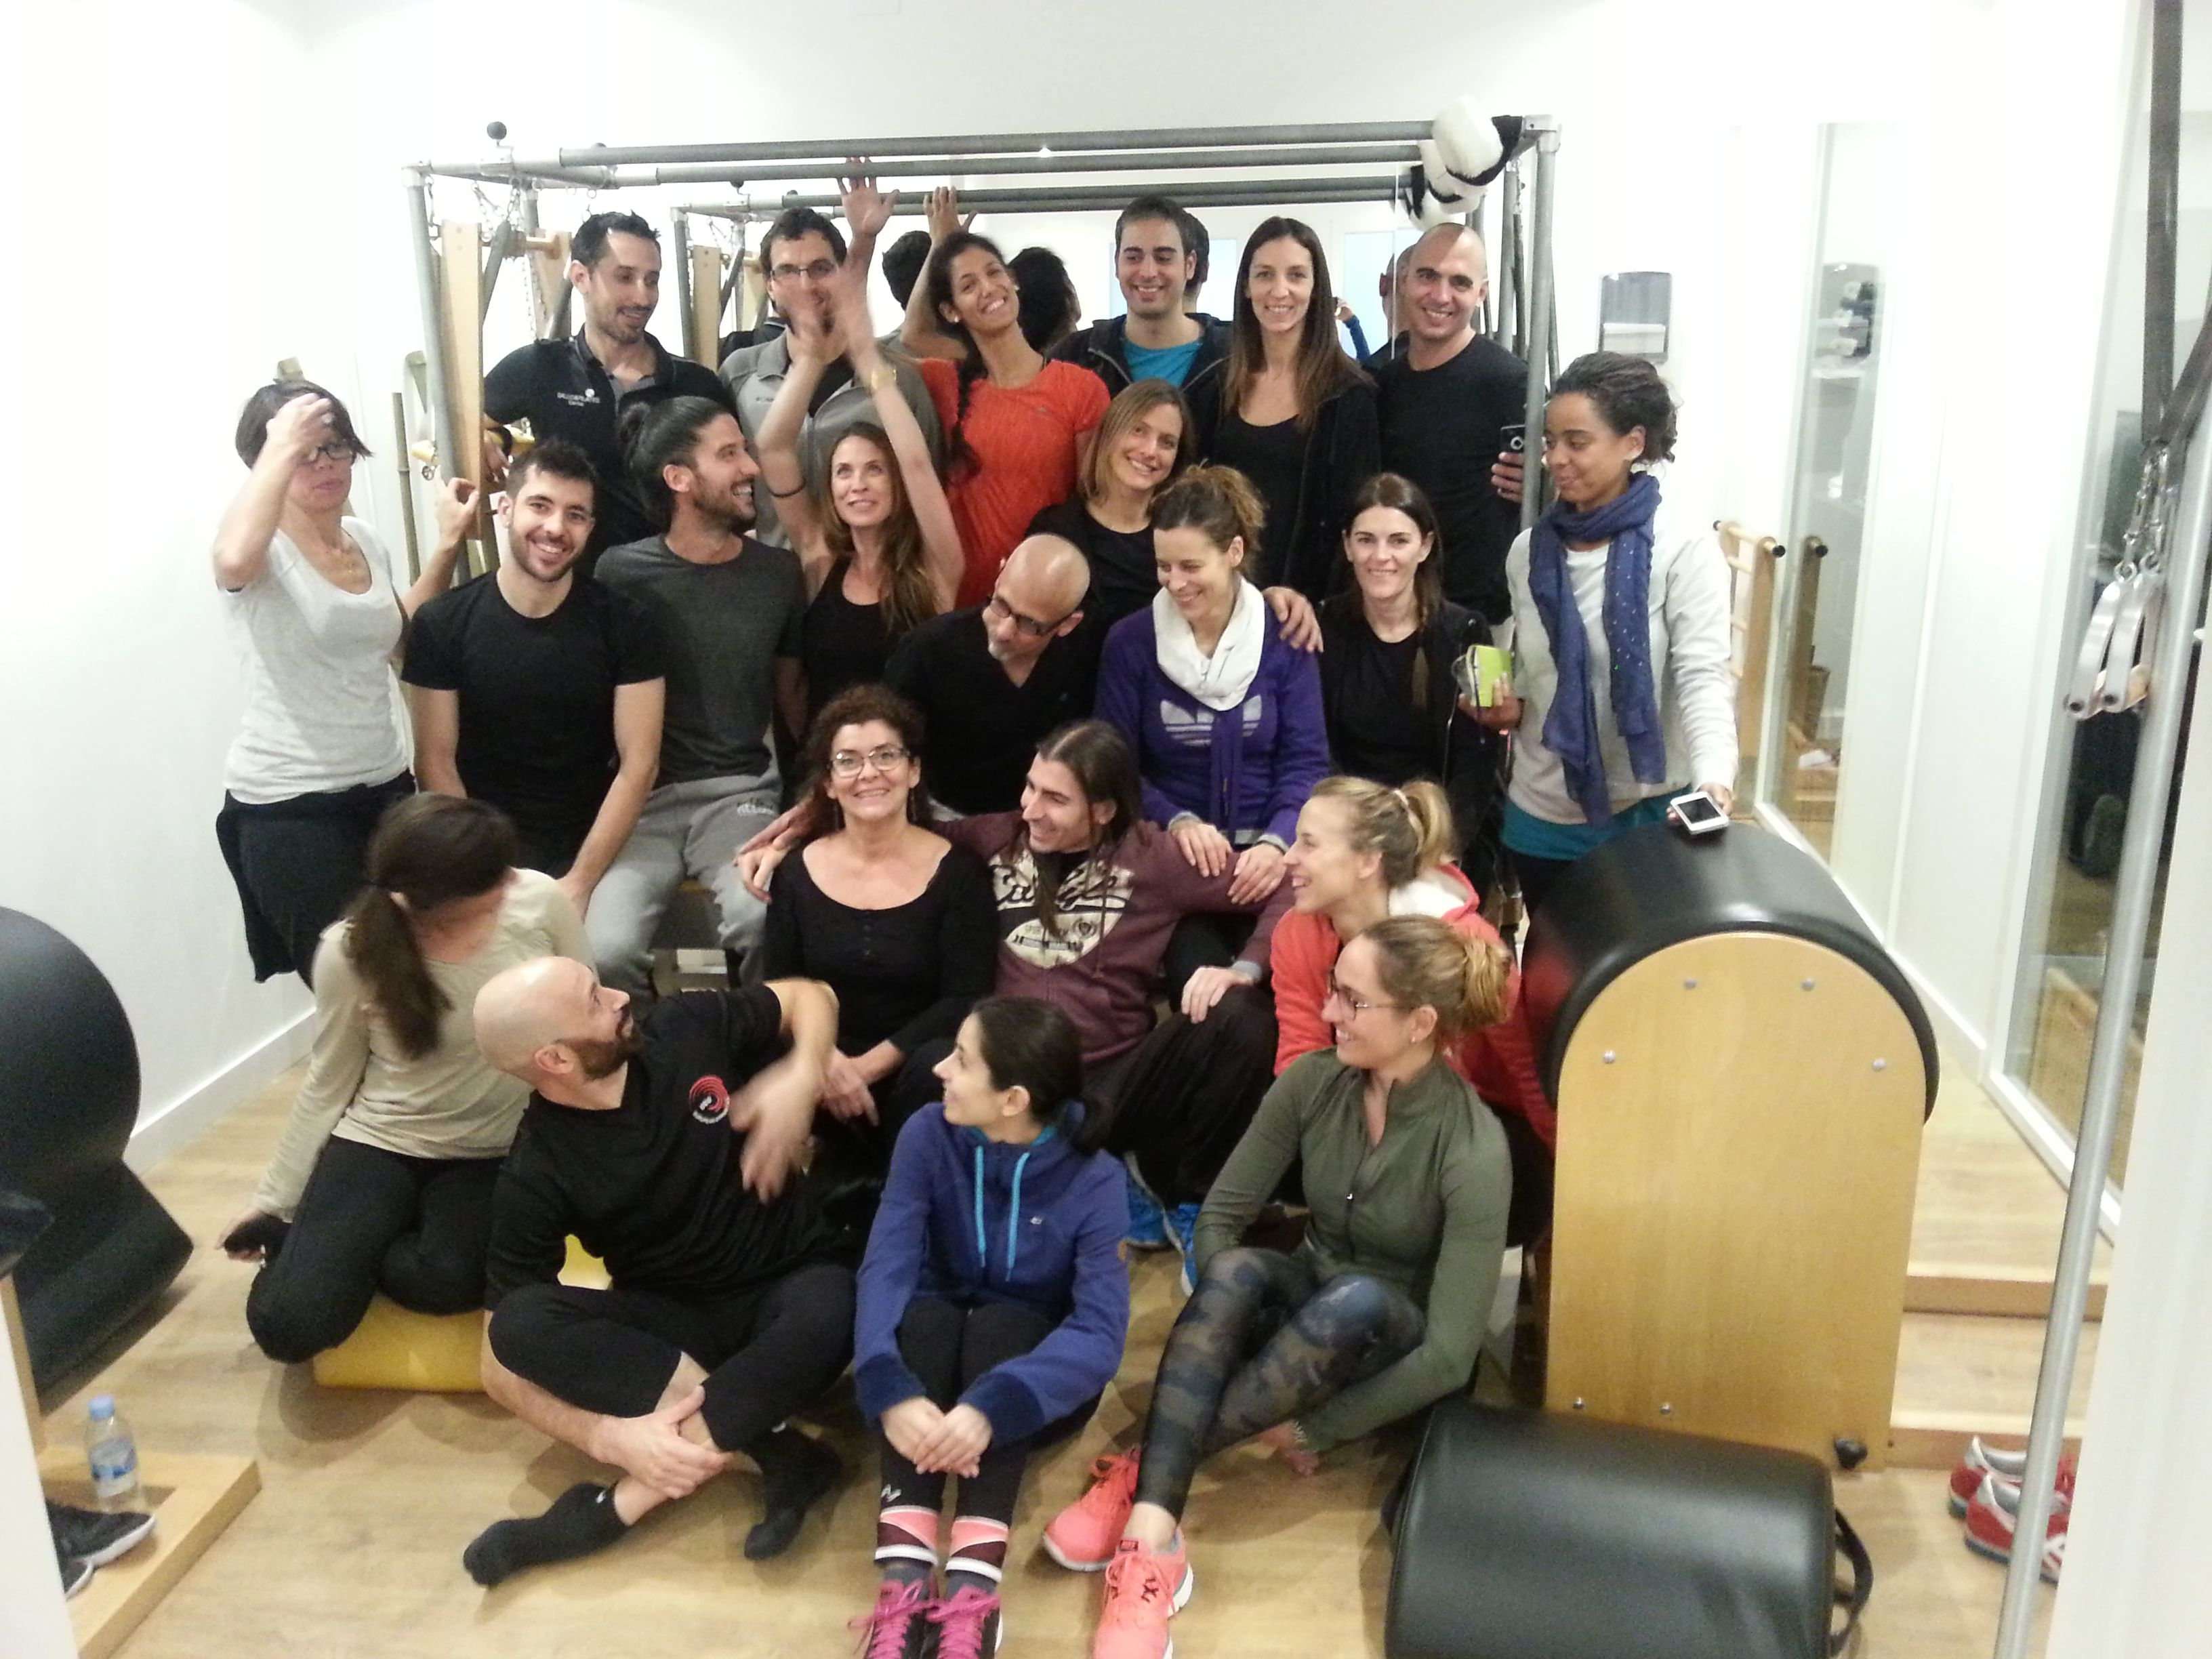 GRUPO WORKSHOP ROMANA'S PILATES POR DAVID BELIO